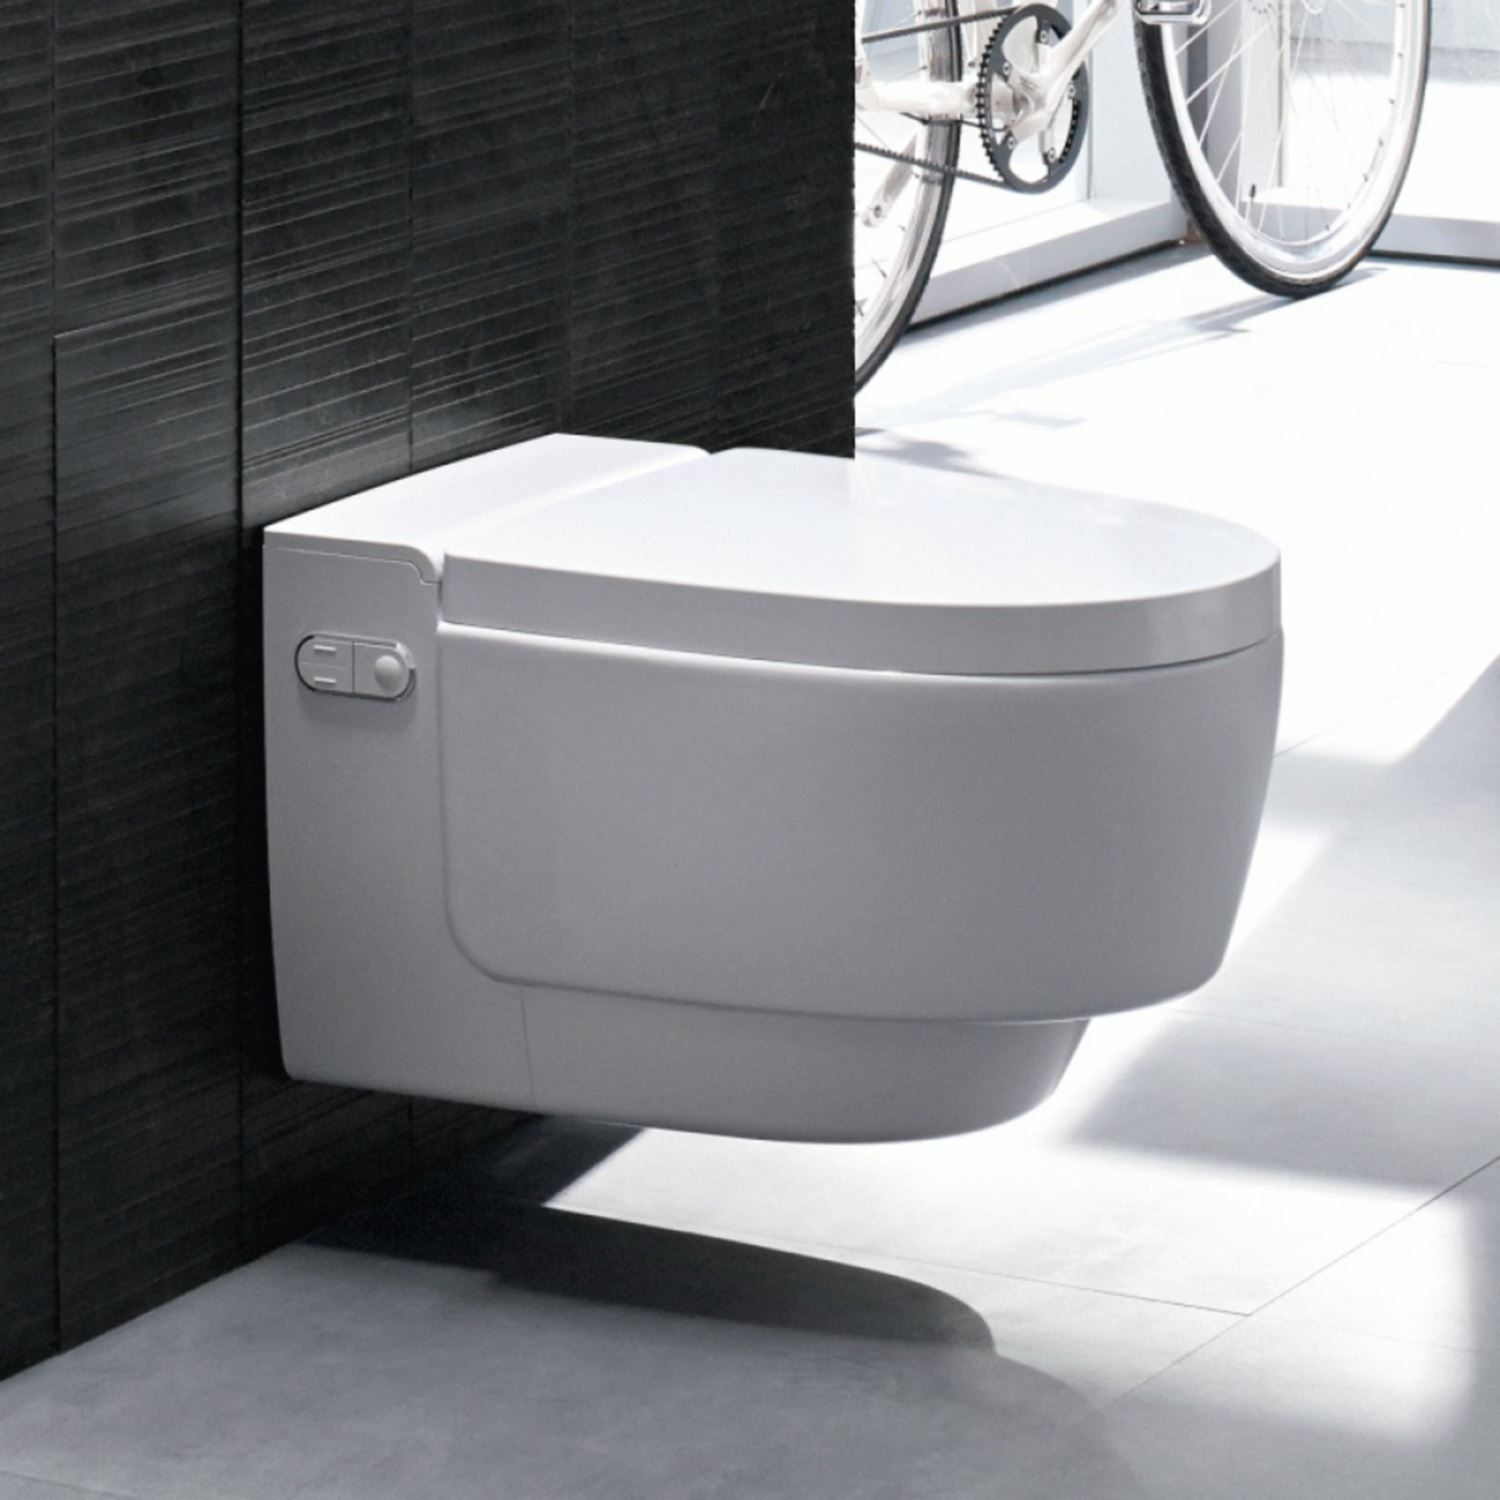 geberit aquaclean douche wc mera fort wit tegeldepot